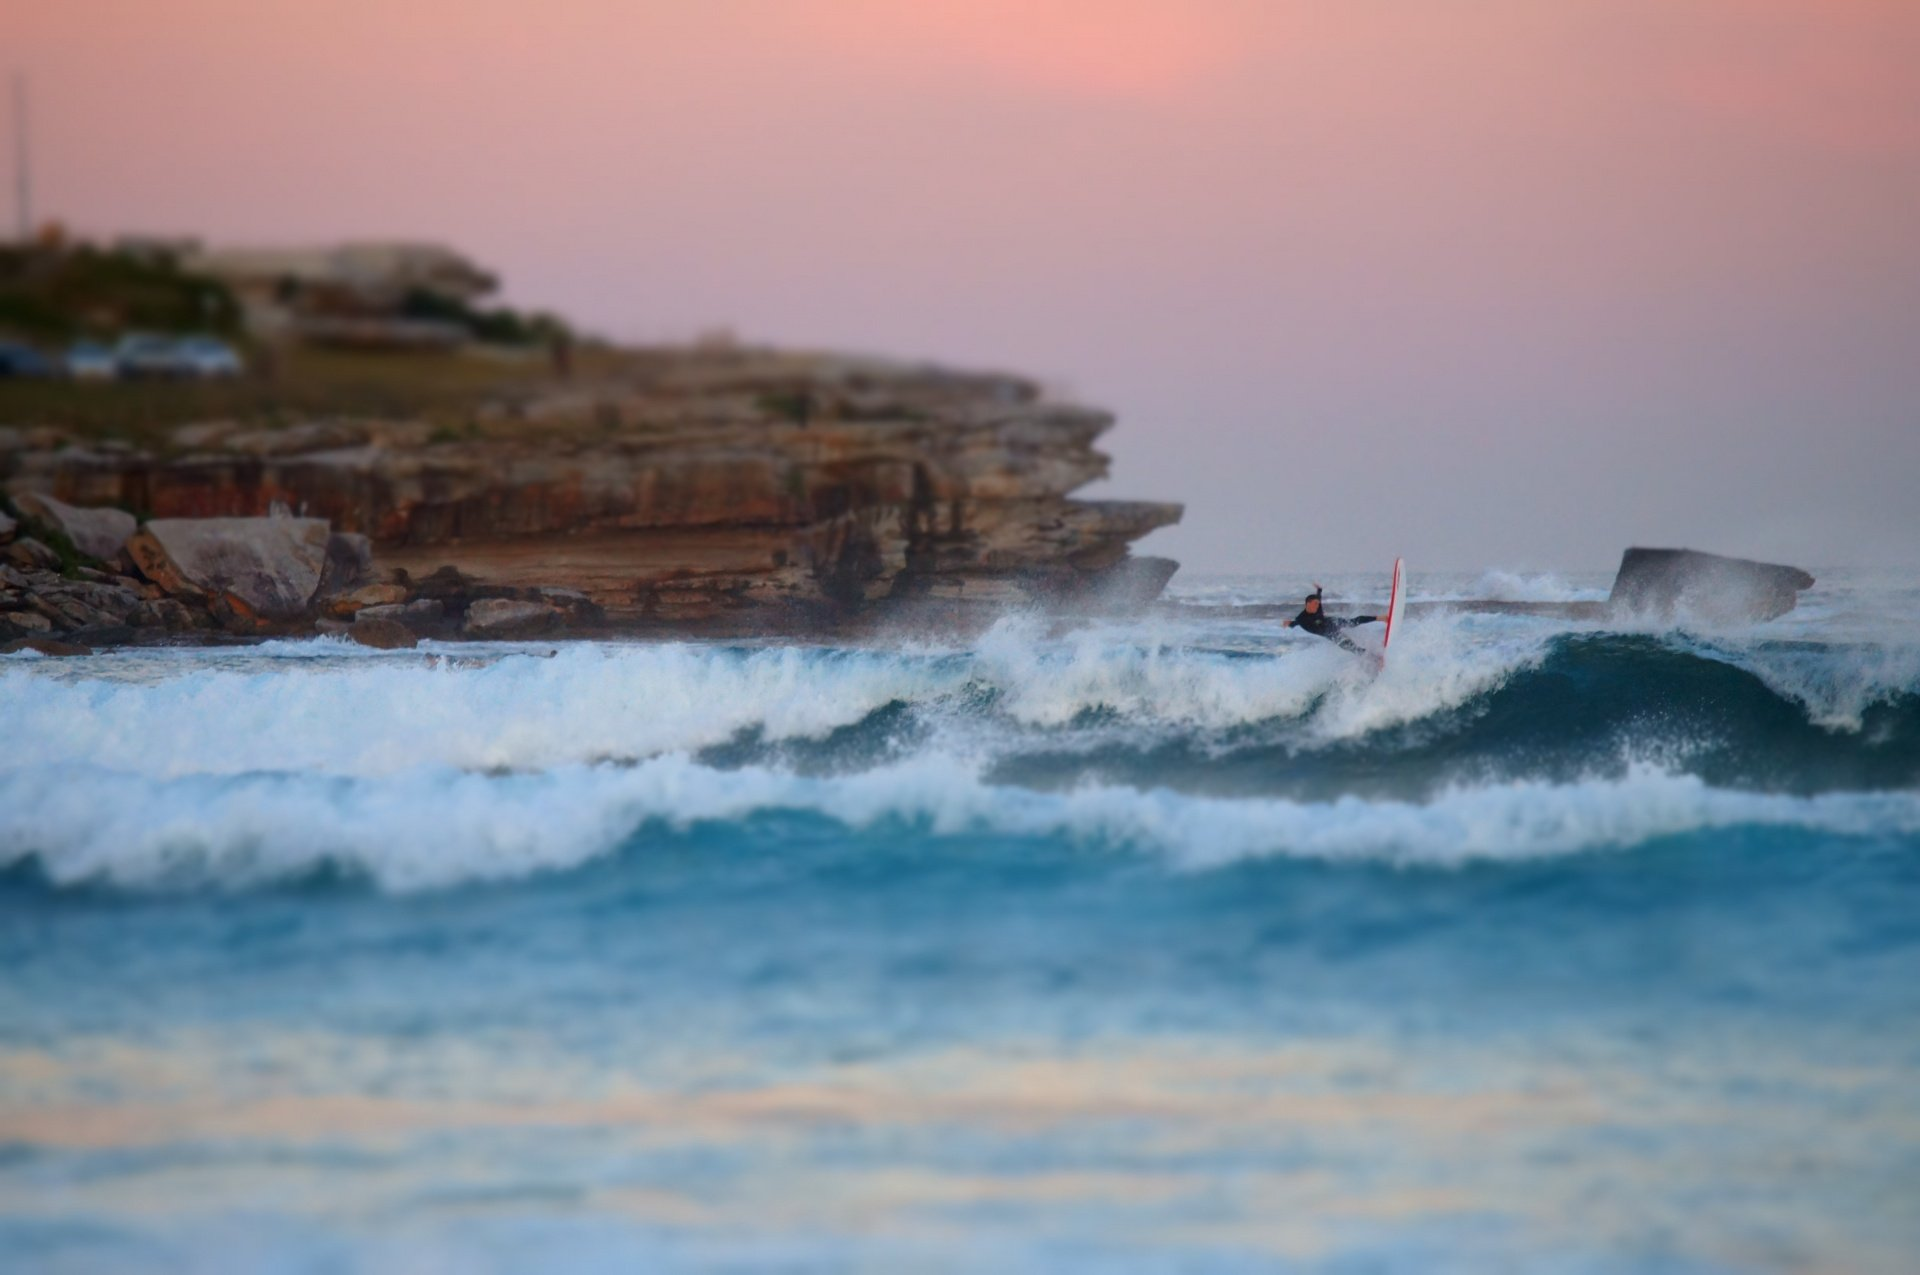 Lis's photo of Sydney (Bondi)